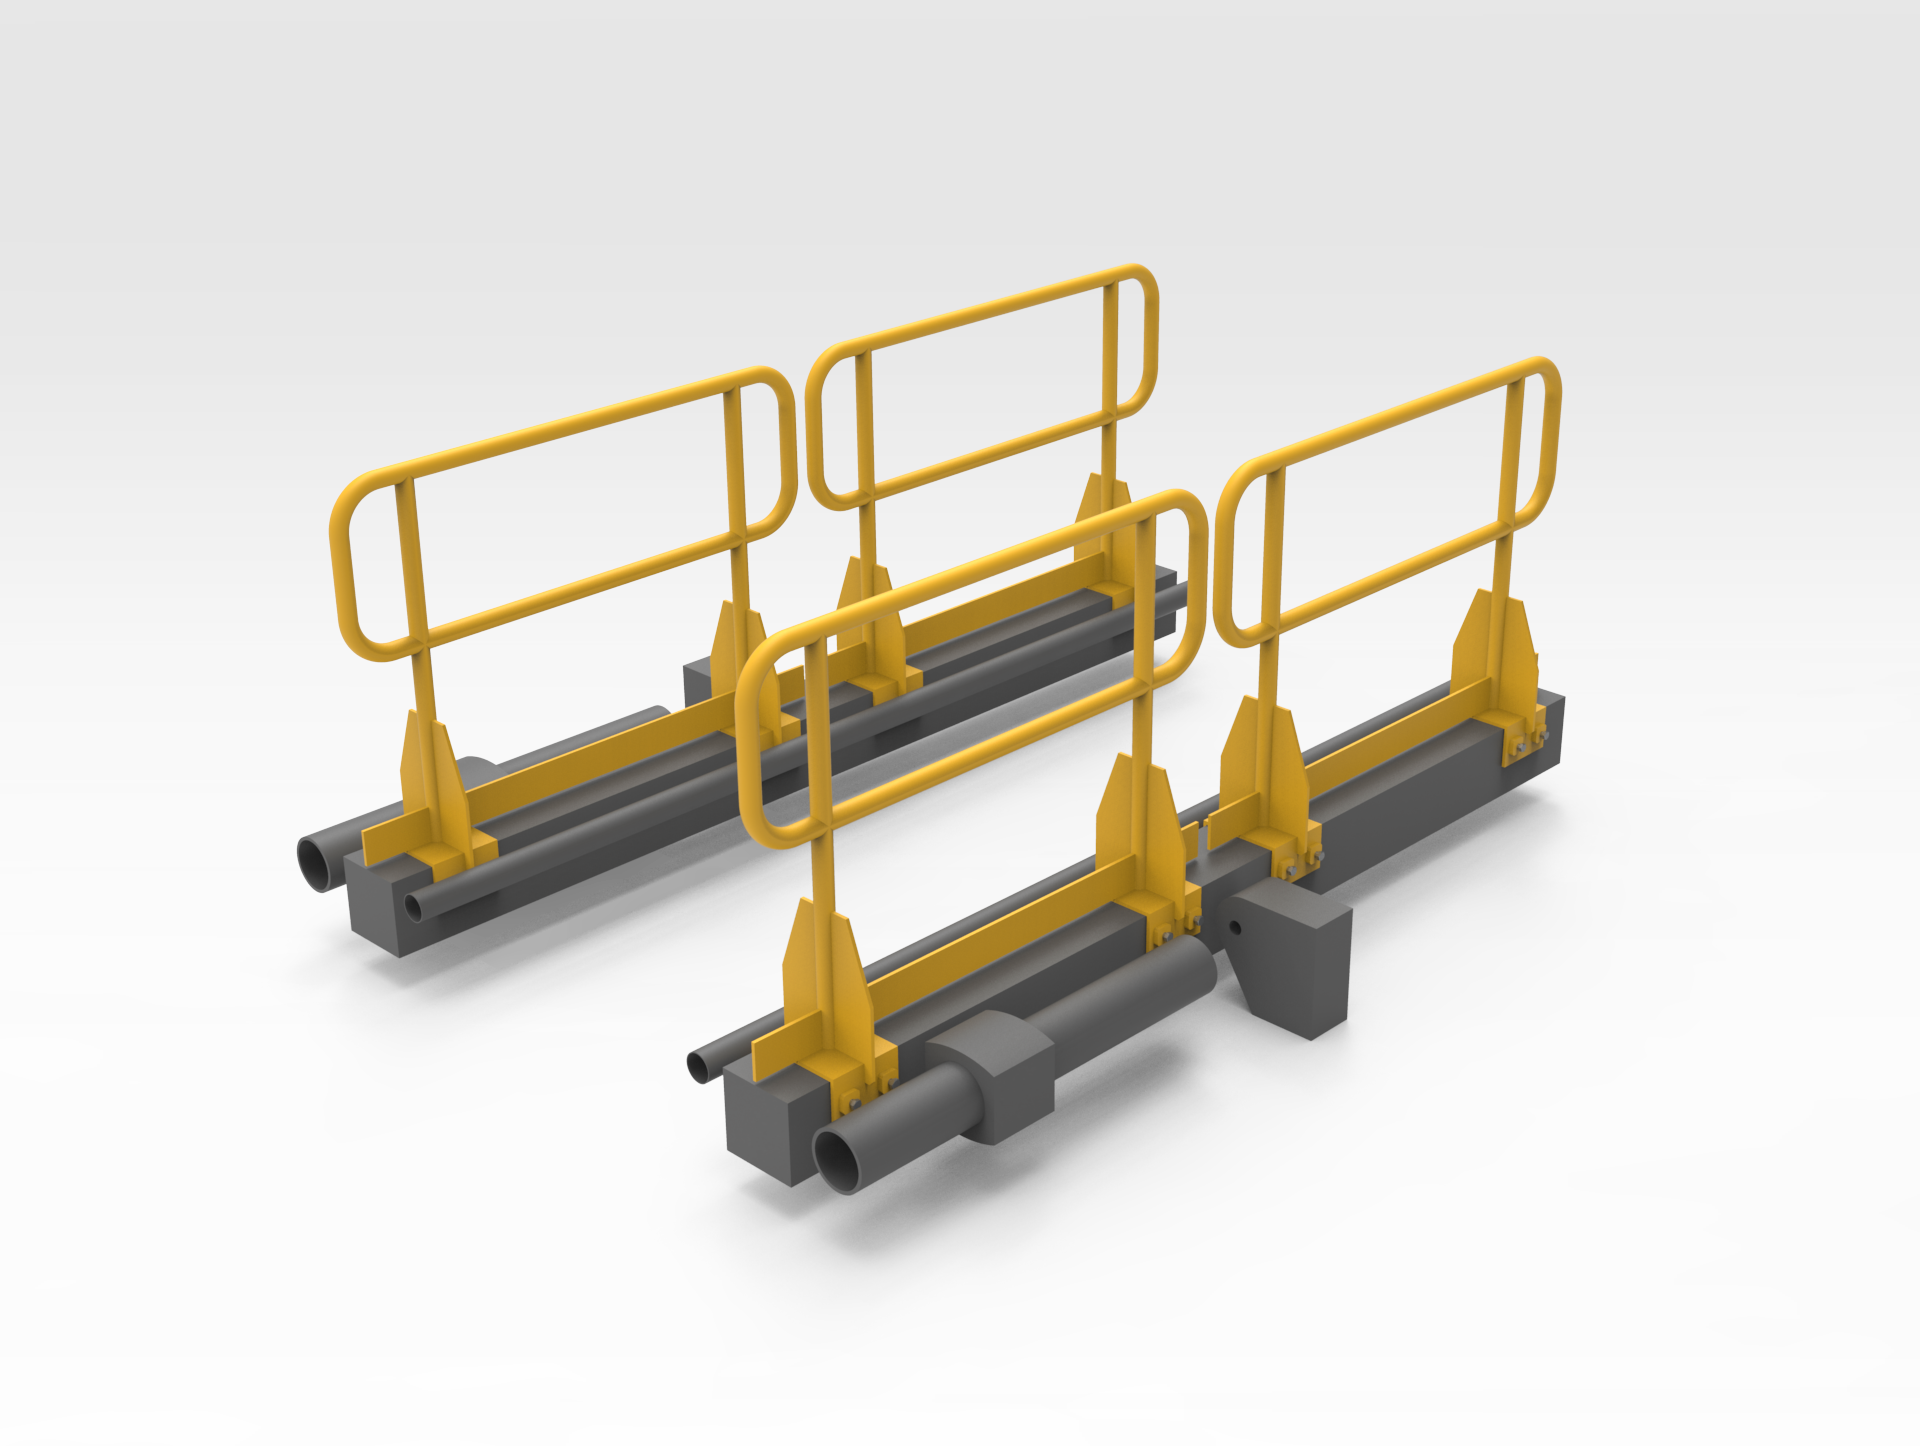 Chassis-Handrails